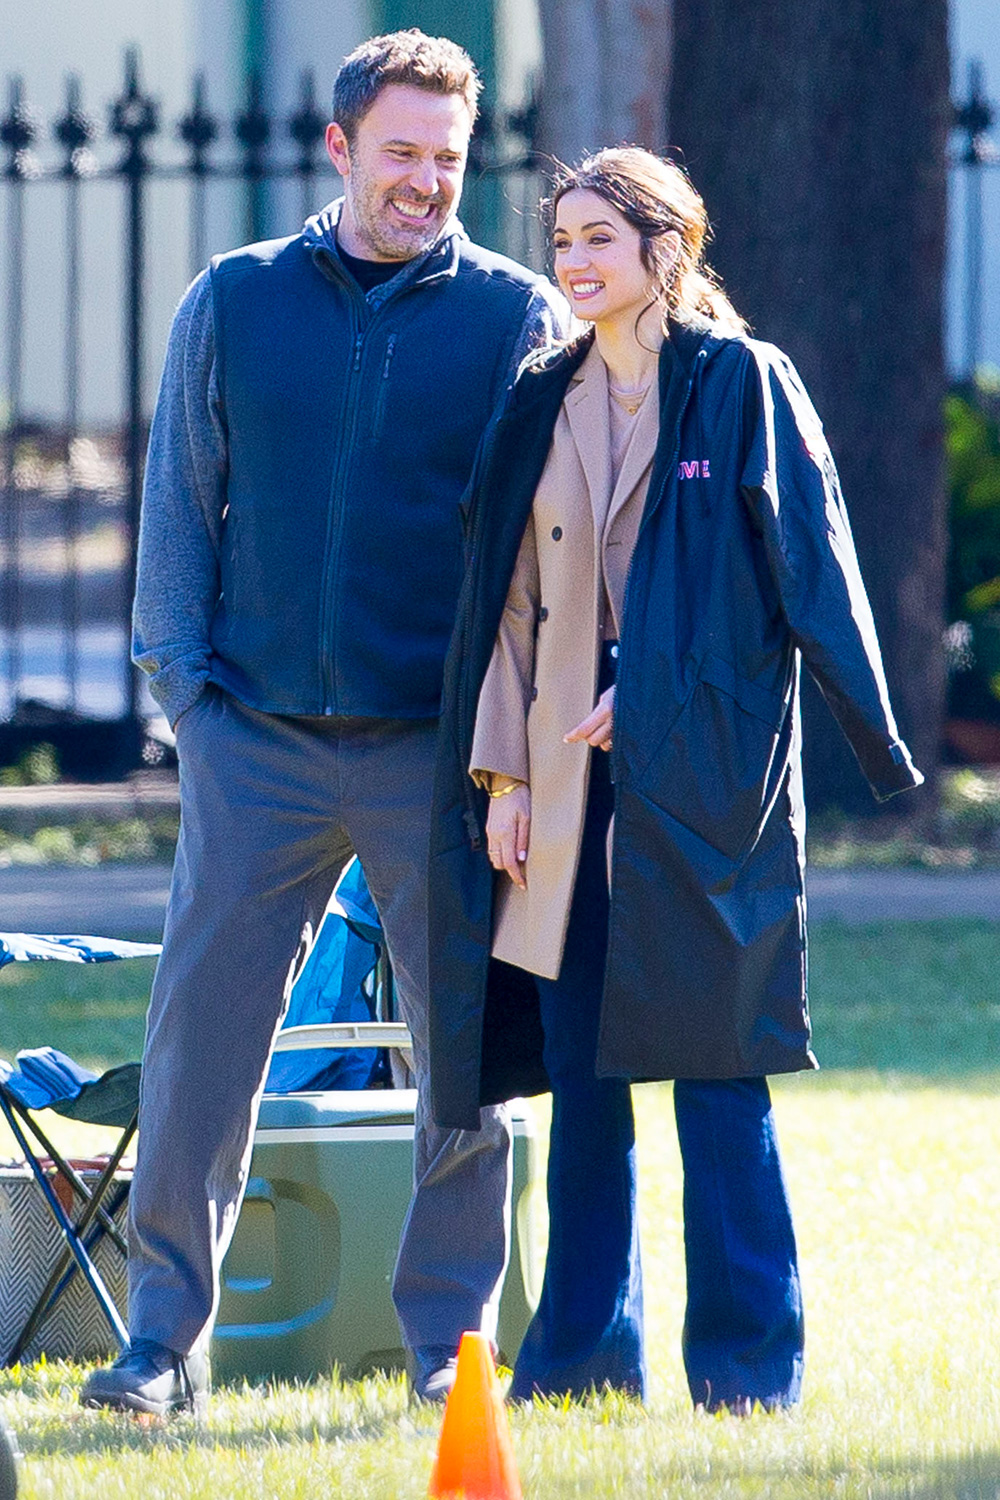 Ben Affleck on set of Deep Water with Ana de Armas